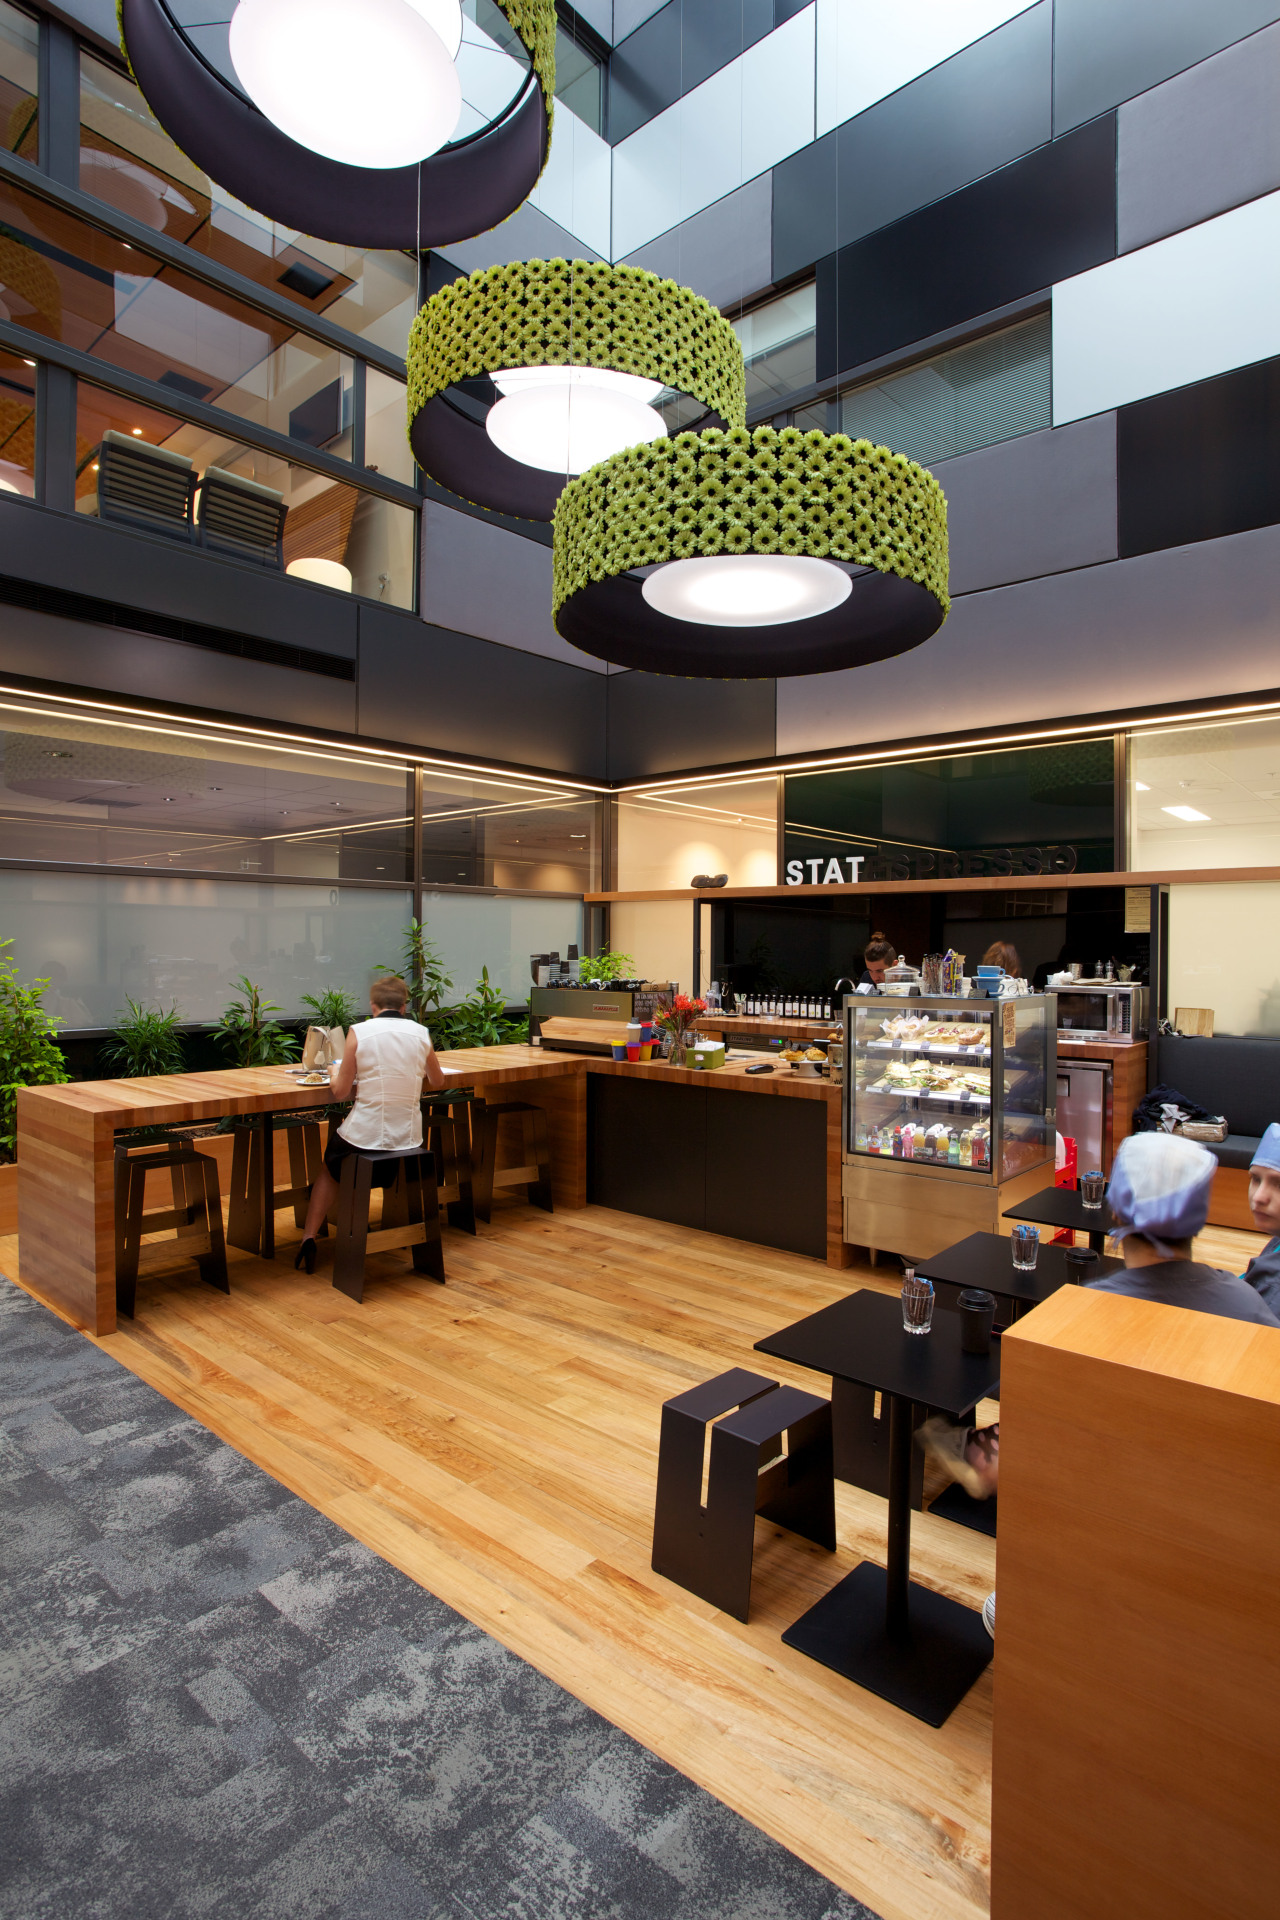 project management from N-Compass brought everything together on café, furniture, interior design, lobby, product design, table